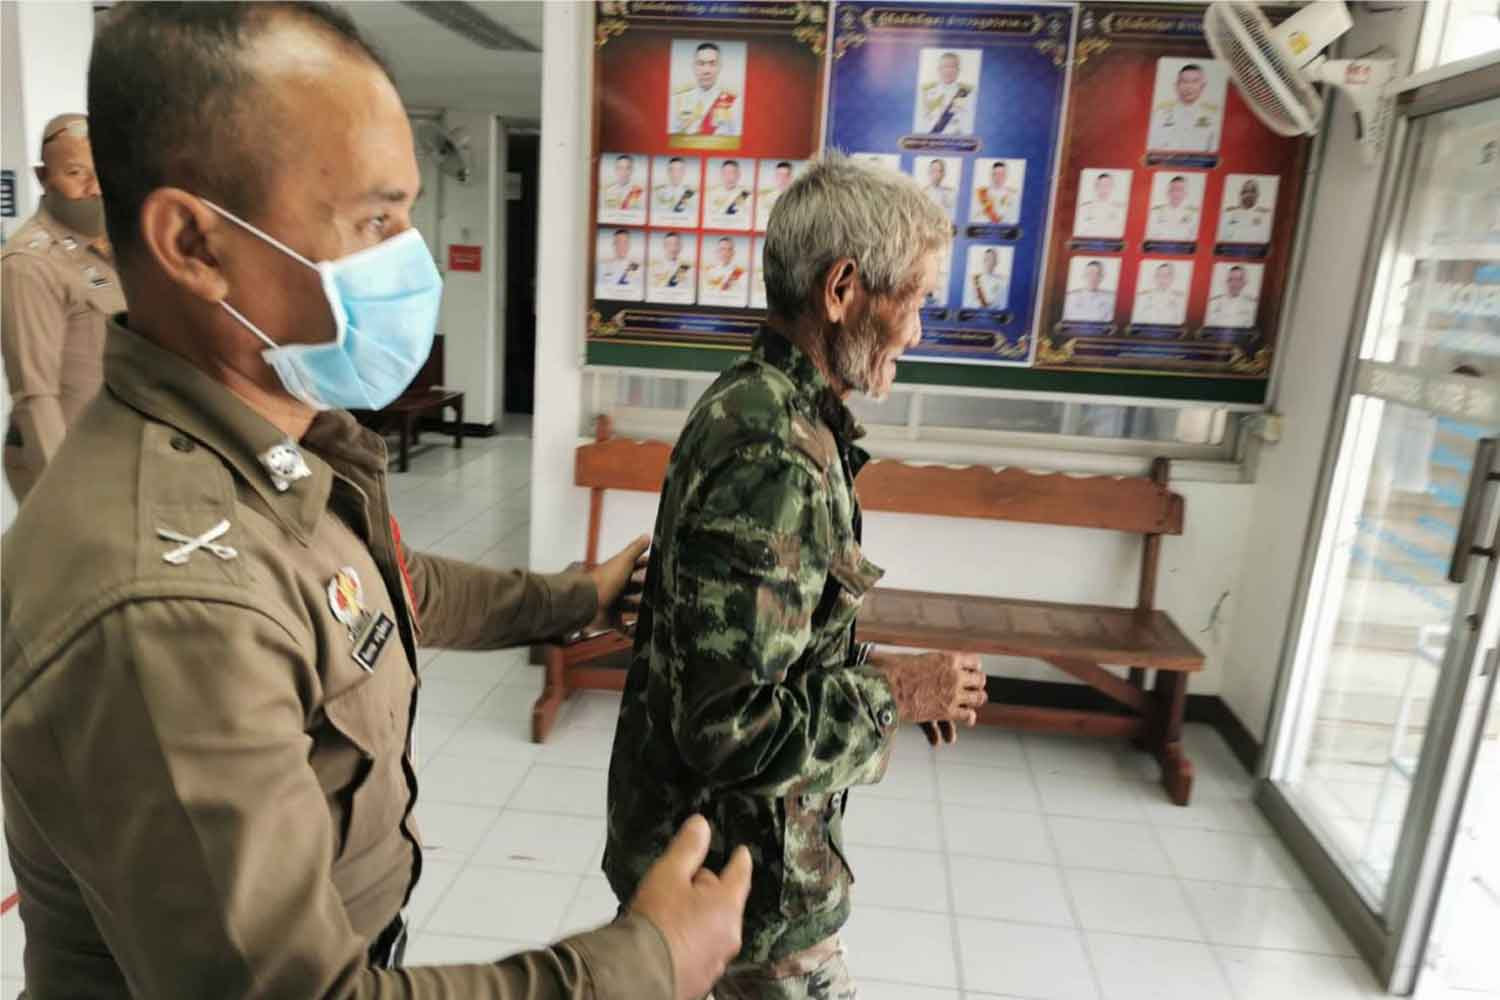 Ka-ed Miadtiab, 74, right, is escorted by police at Prakhon Chai police station in Buri Ram. He was charged with murder for stabbing to death his nephew after a row on Sunday. (Photo by Surachai Piragsa)